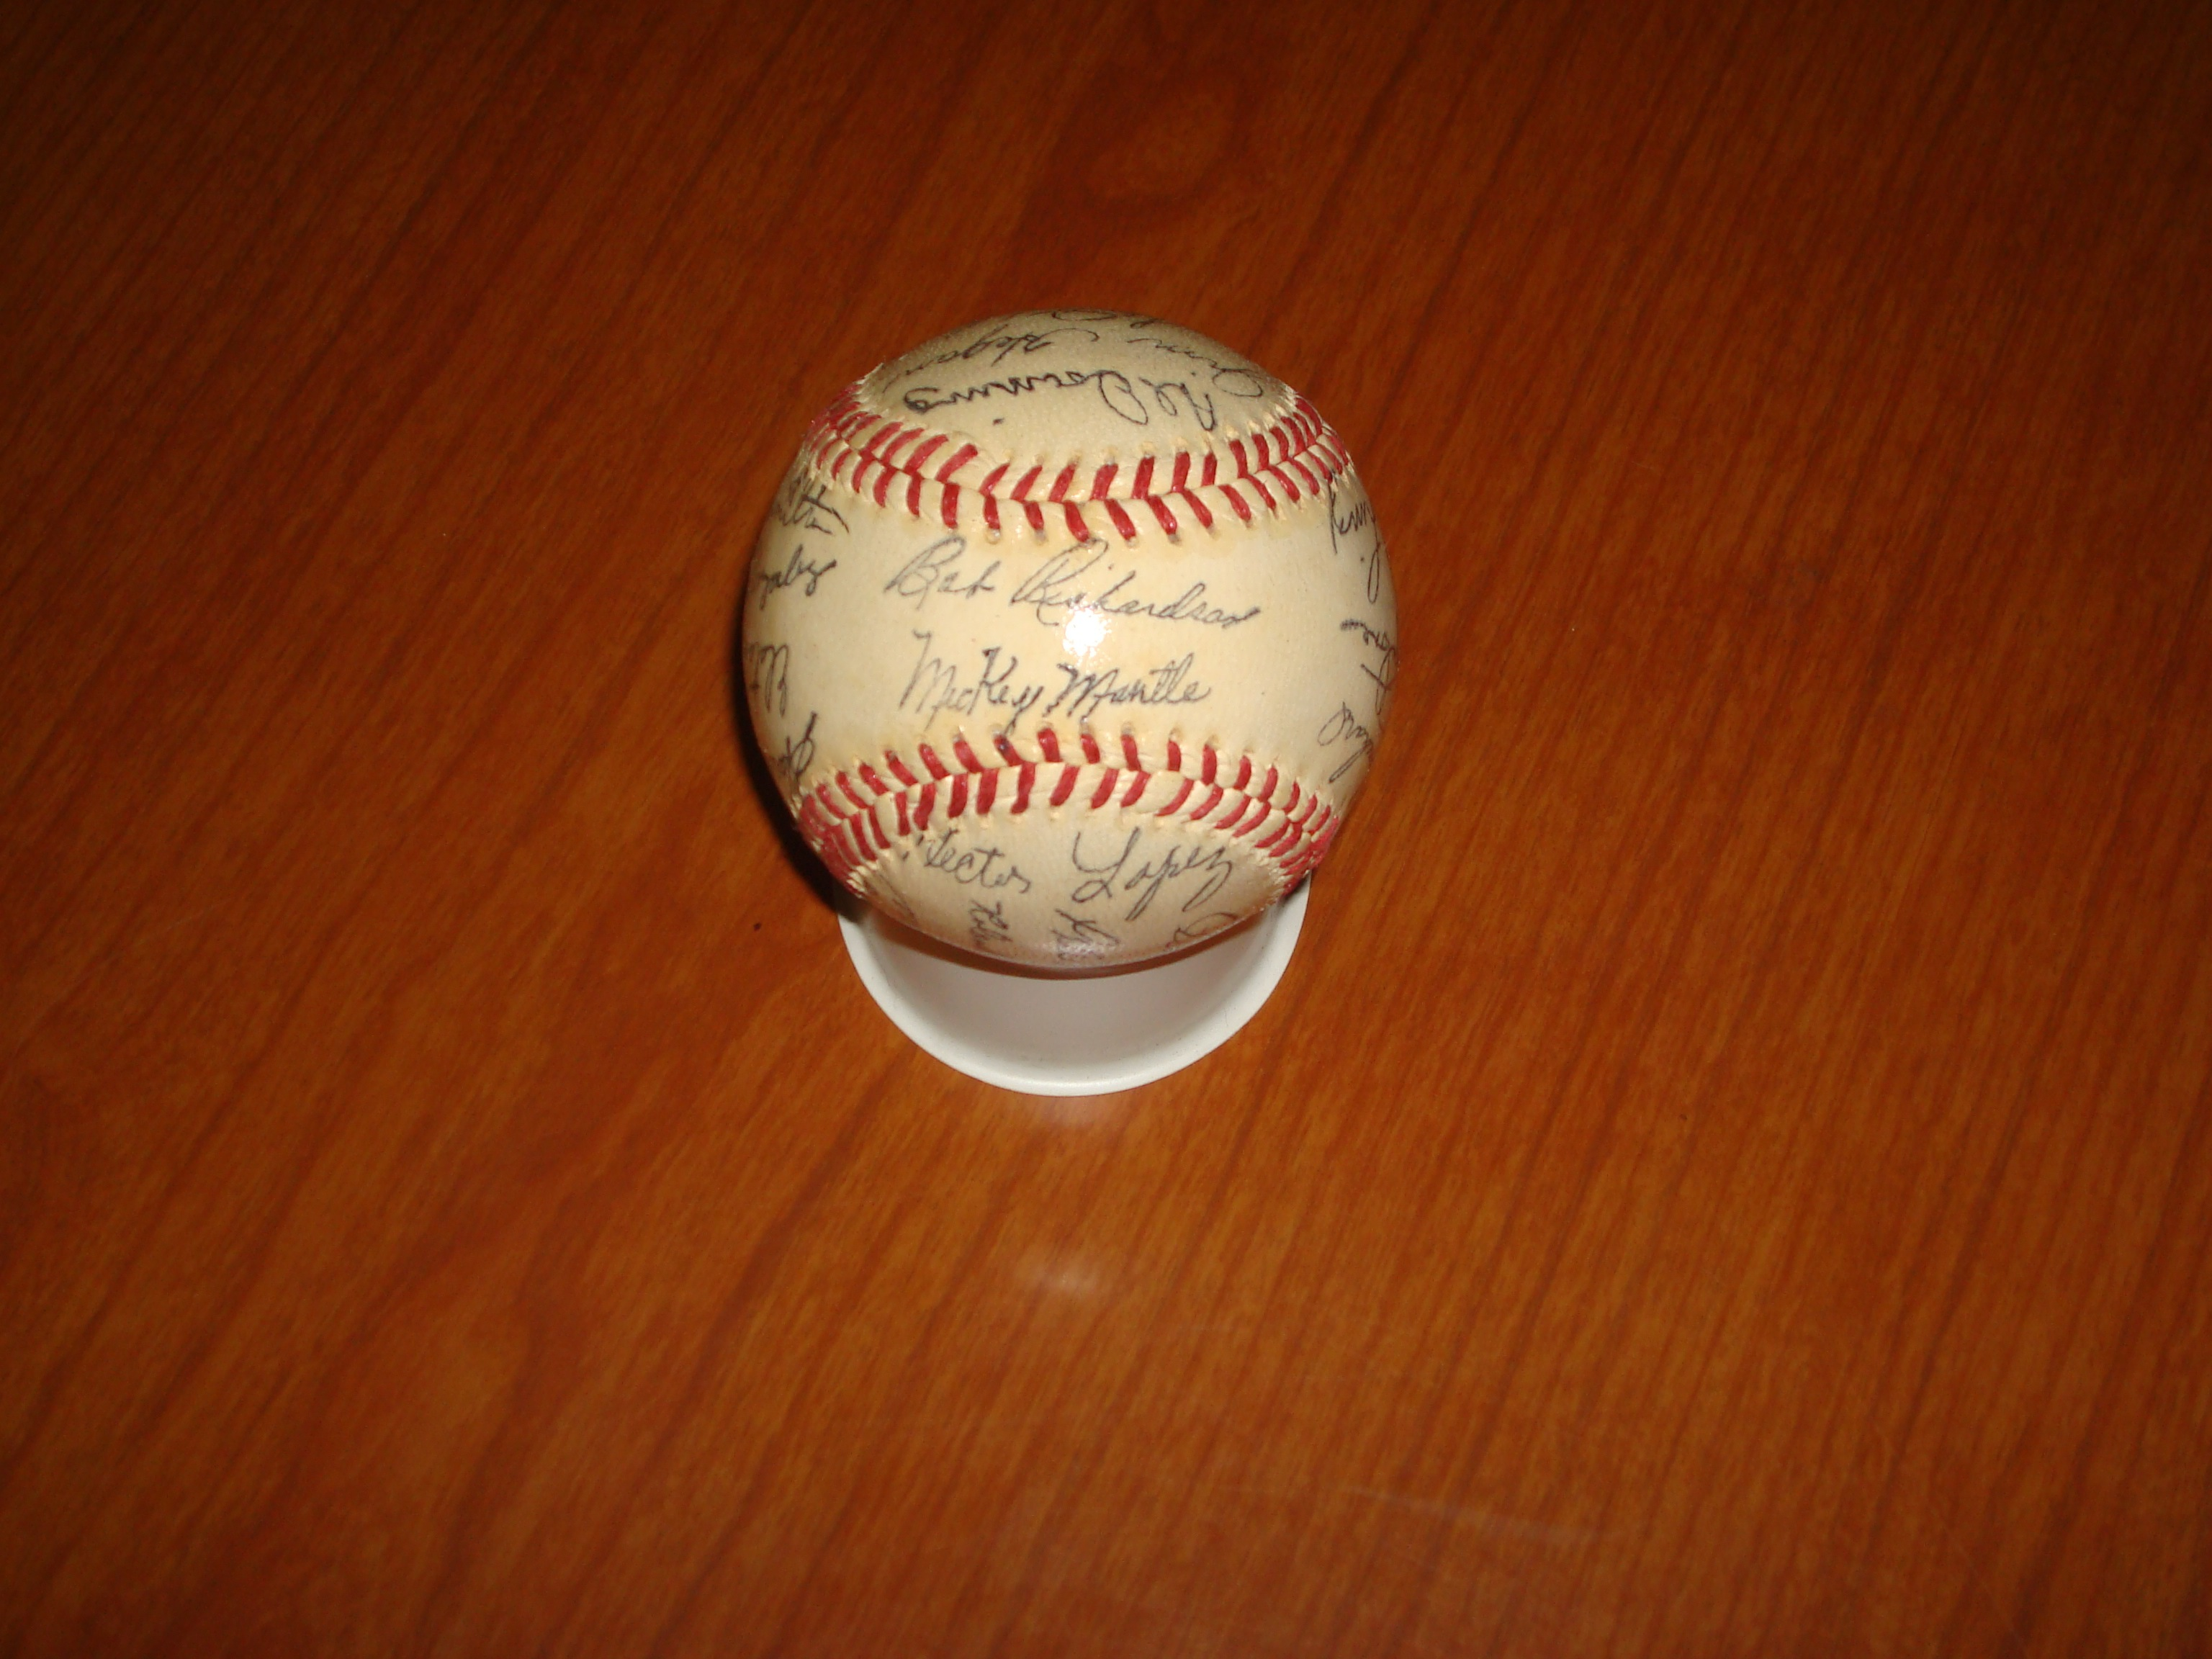 Official Autograph Tem Ball for 1962 MLB World Champion New York Yankees featuring Bobby Richardson, Hector Lopez, Al Downing & Mickey Mantle